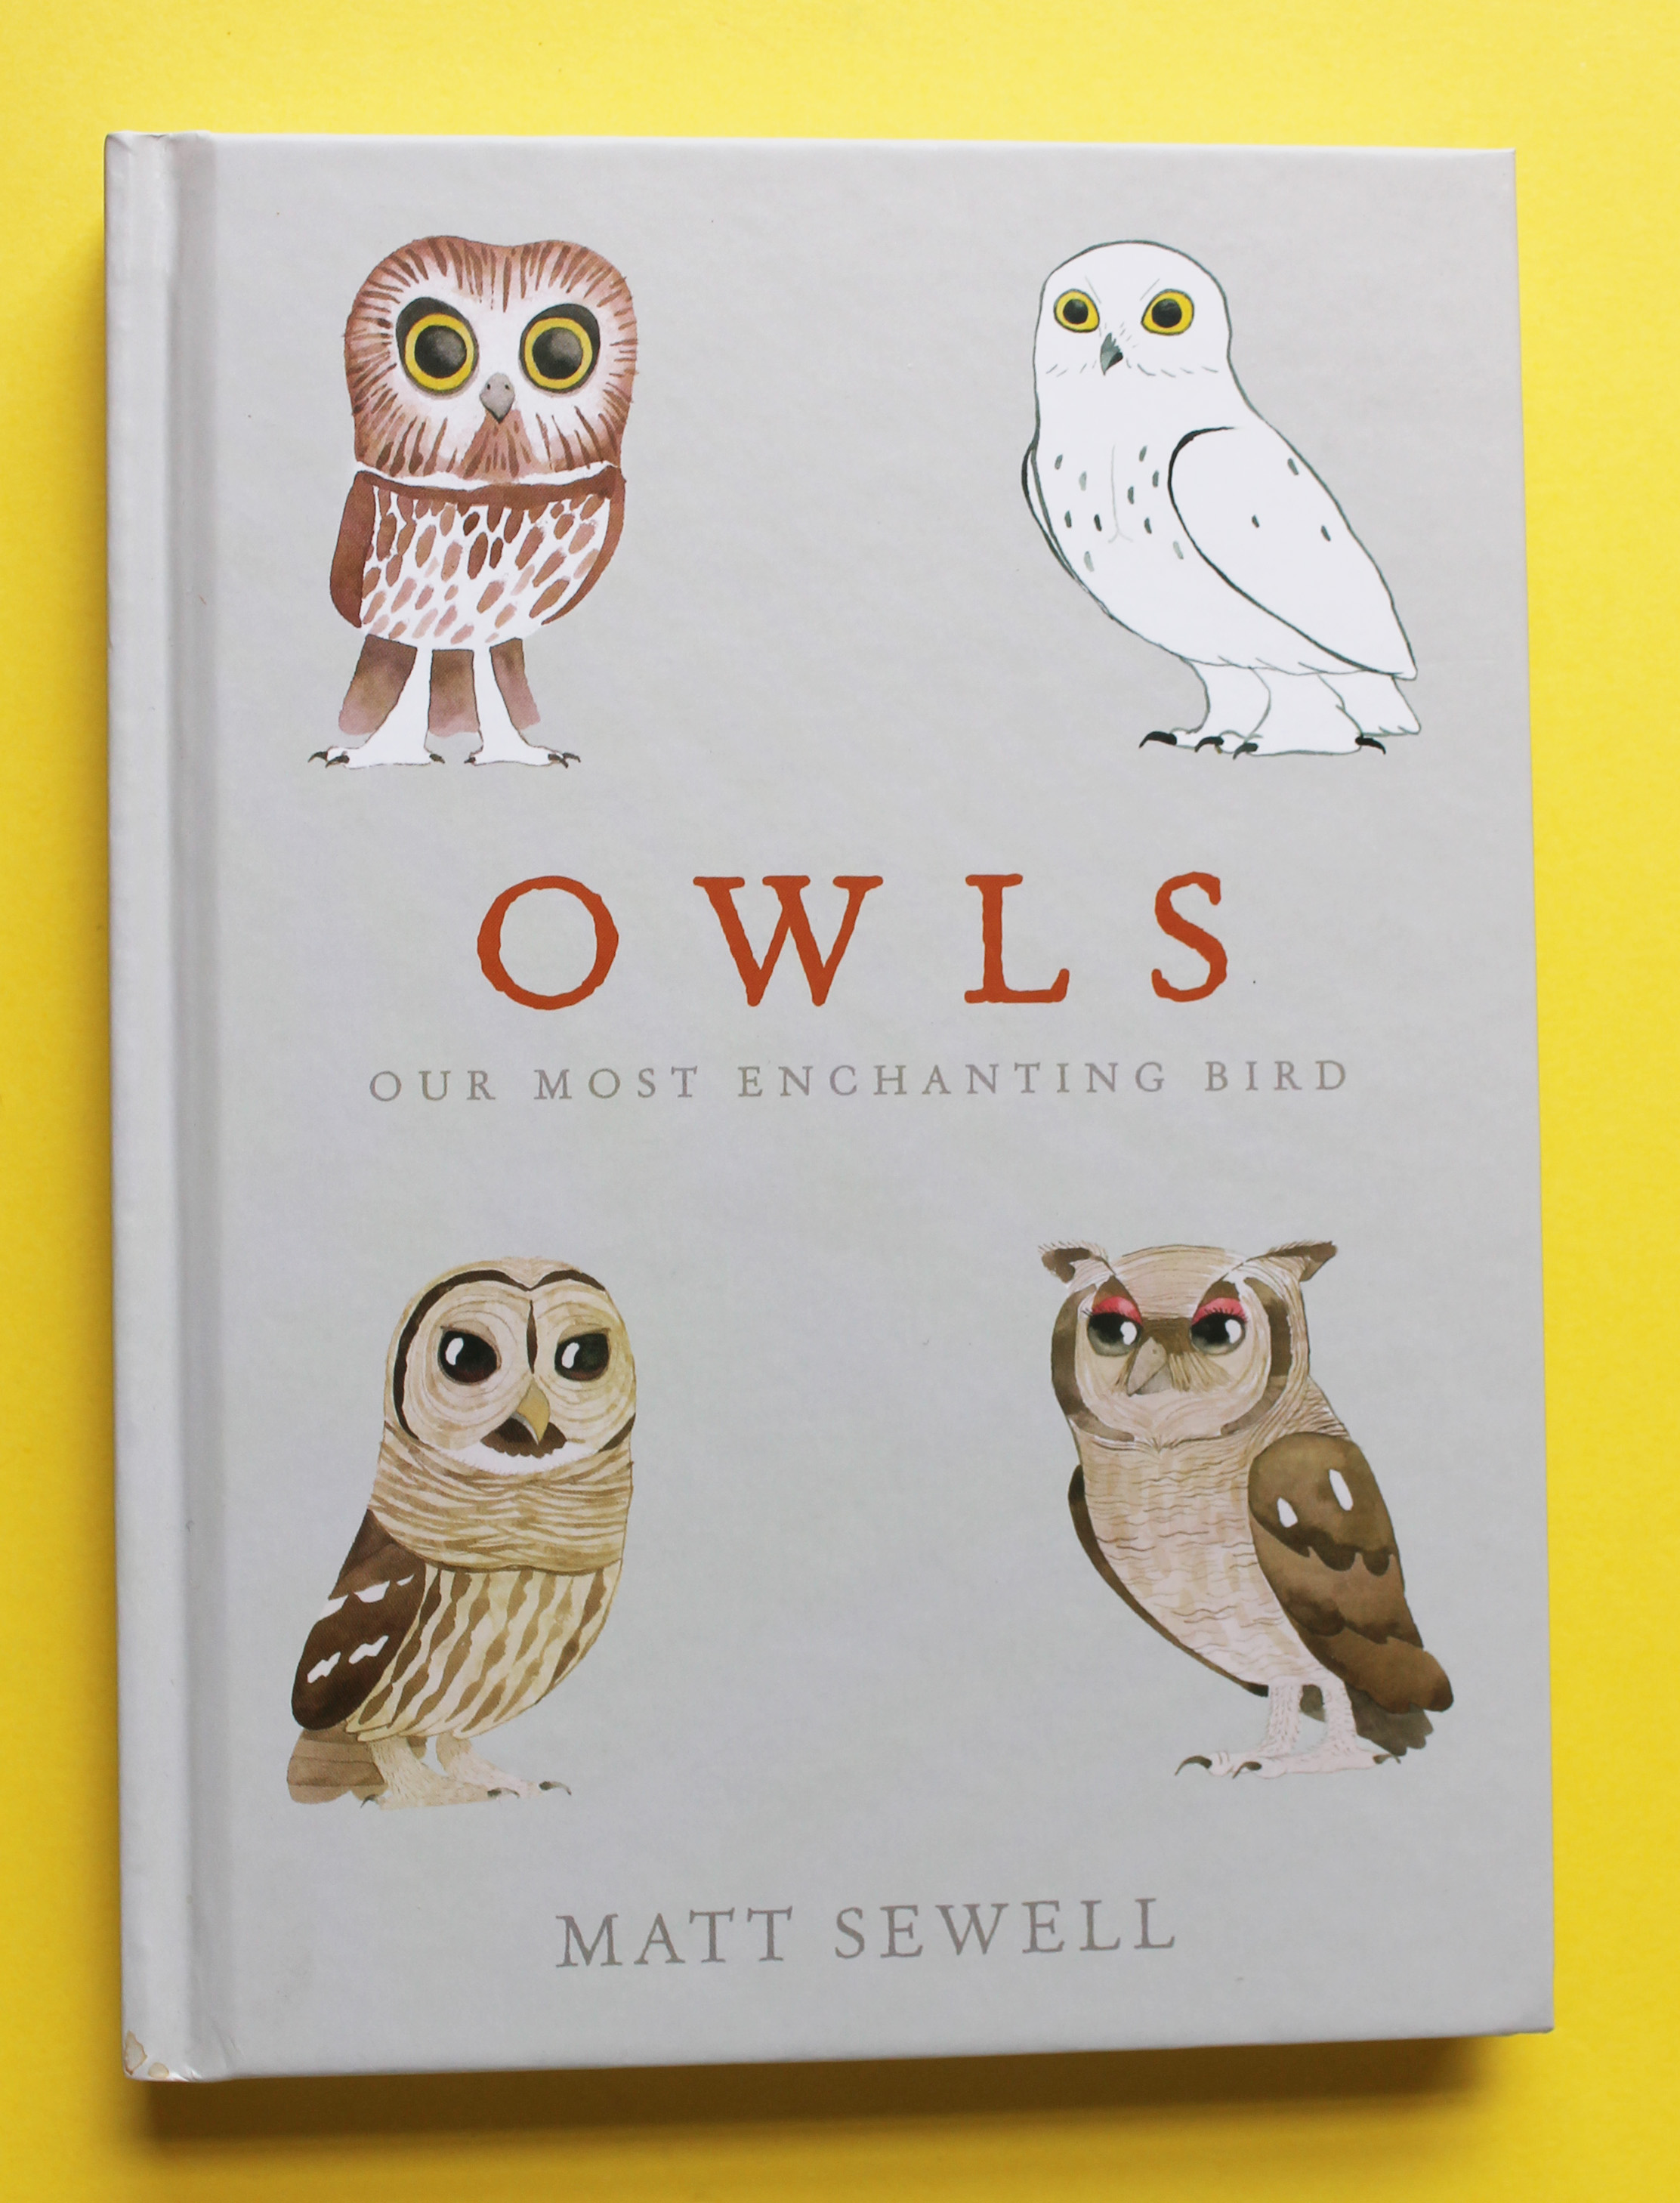 Garten Design Owl Books Matt Sewell